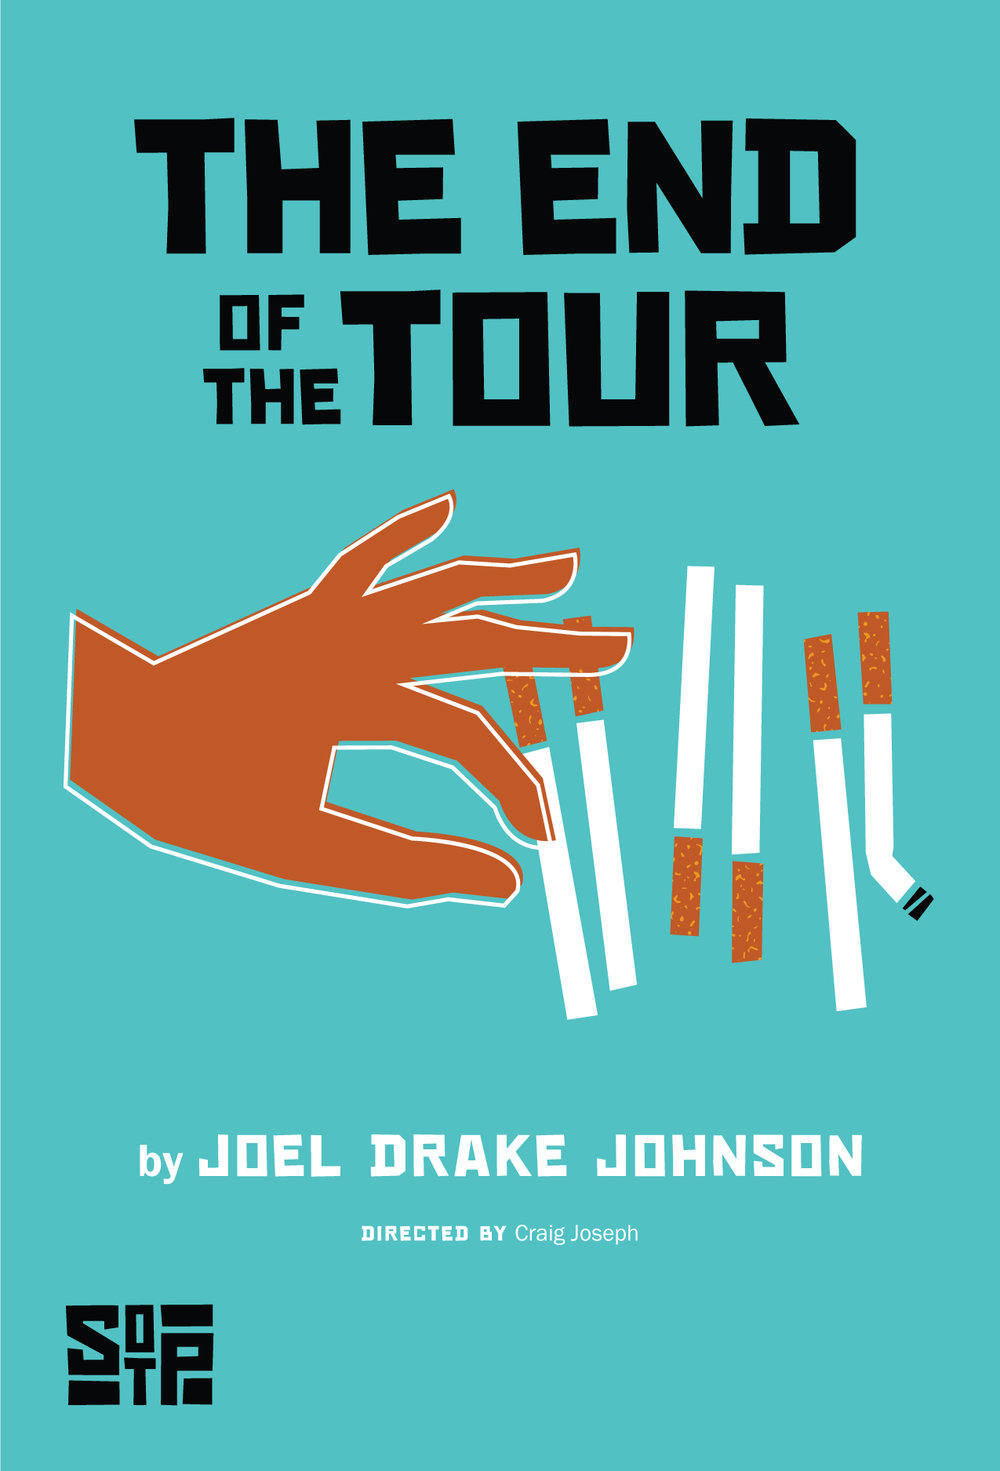 sotp_the_end_of_the_tour_card_front_03.jpg